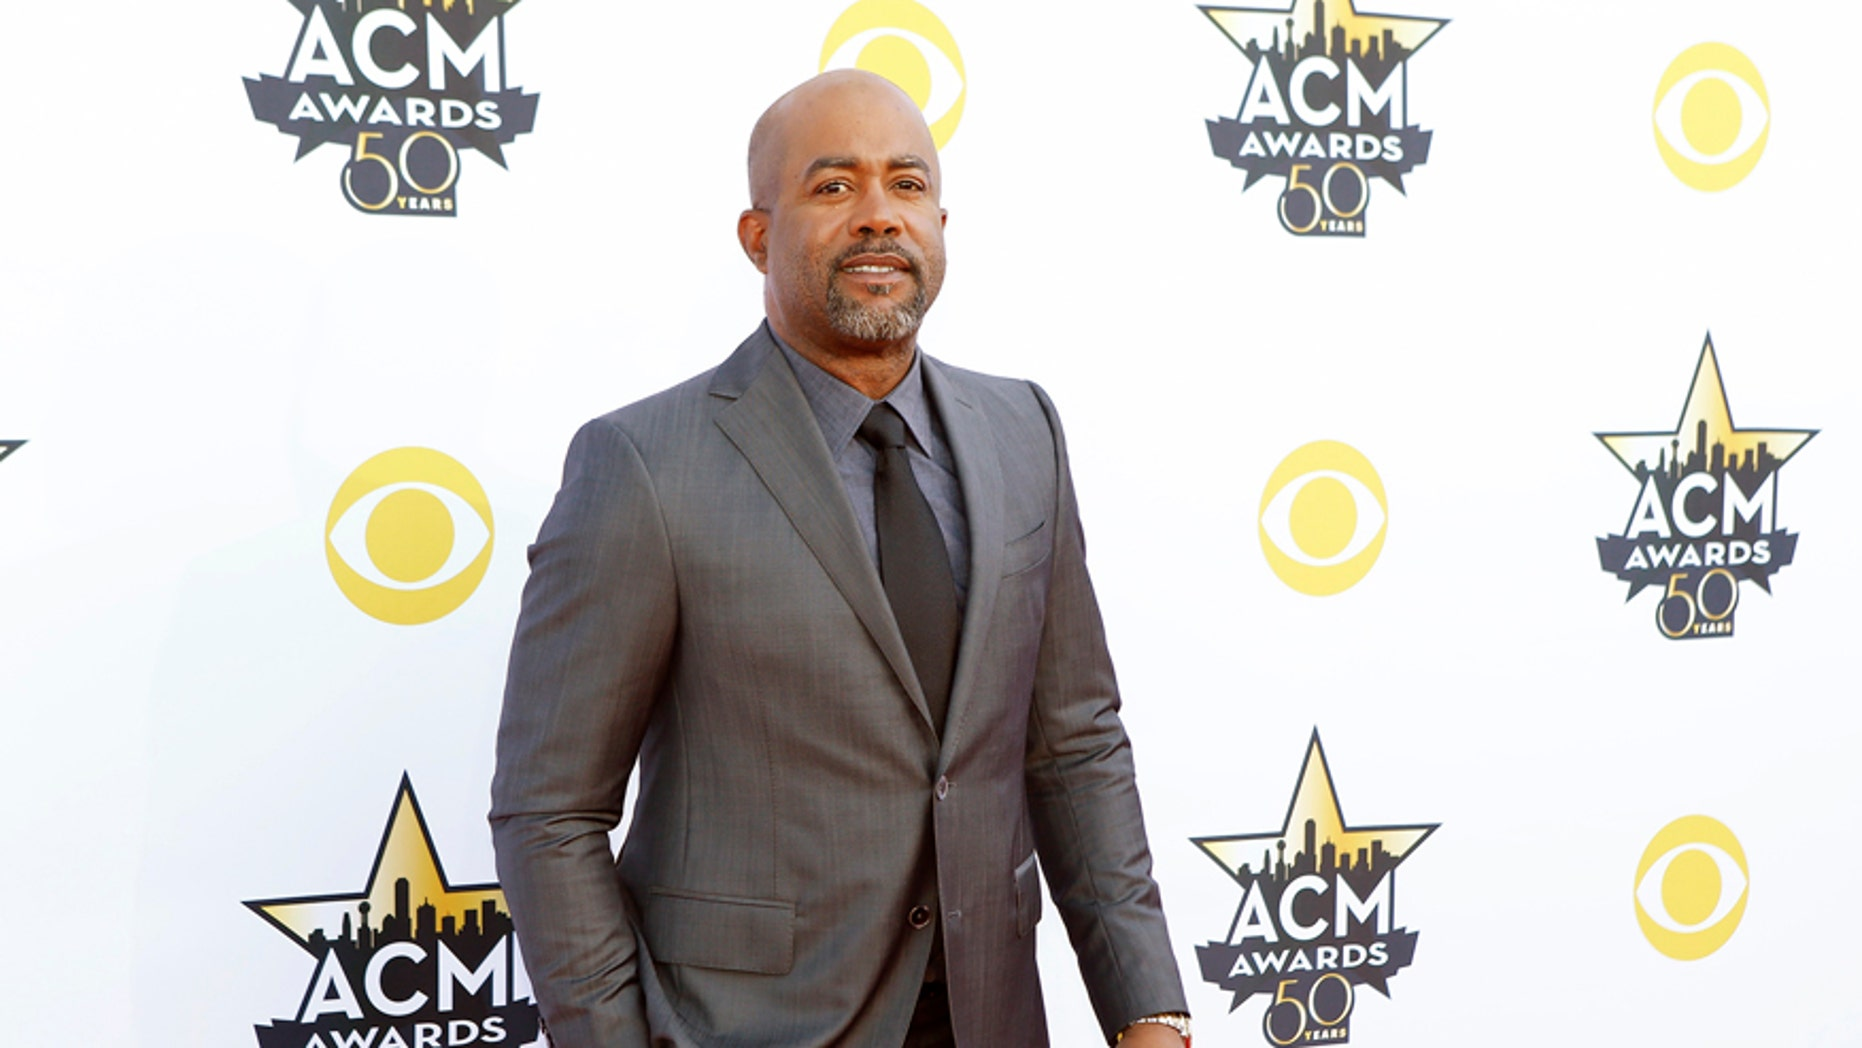 April 19, 2015. Singer Darius Rucker arrives at the 50th Annual Academy of Country Music Awards in Arlington, Texas.